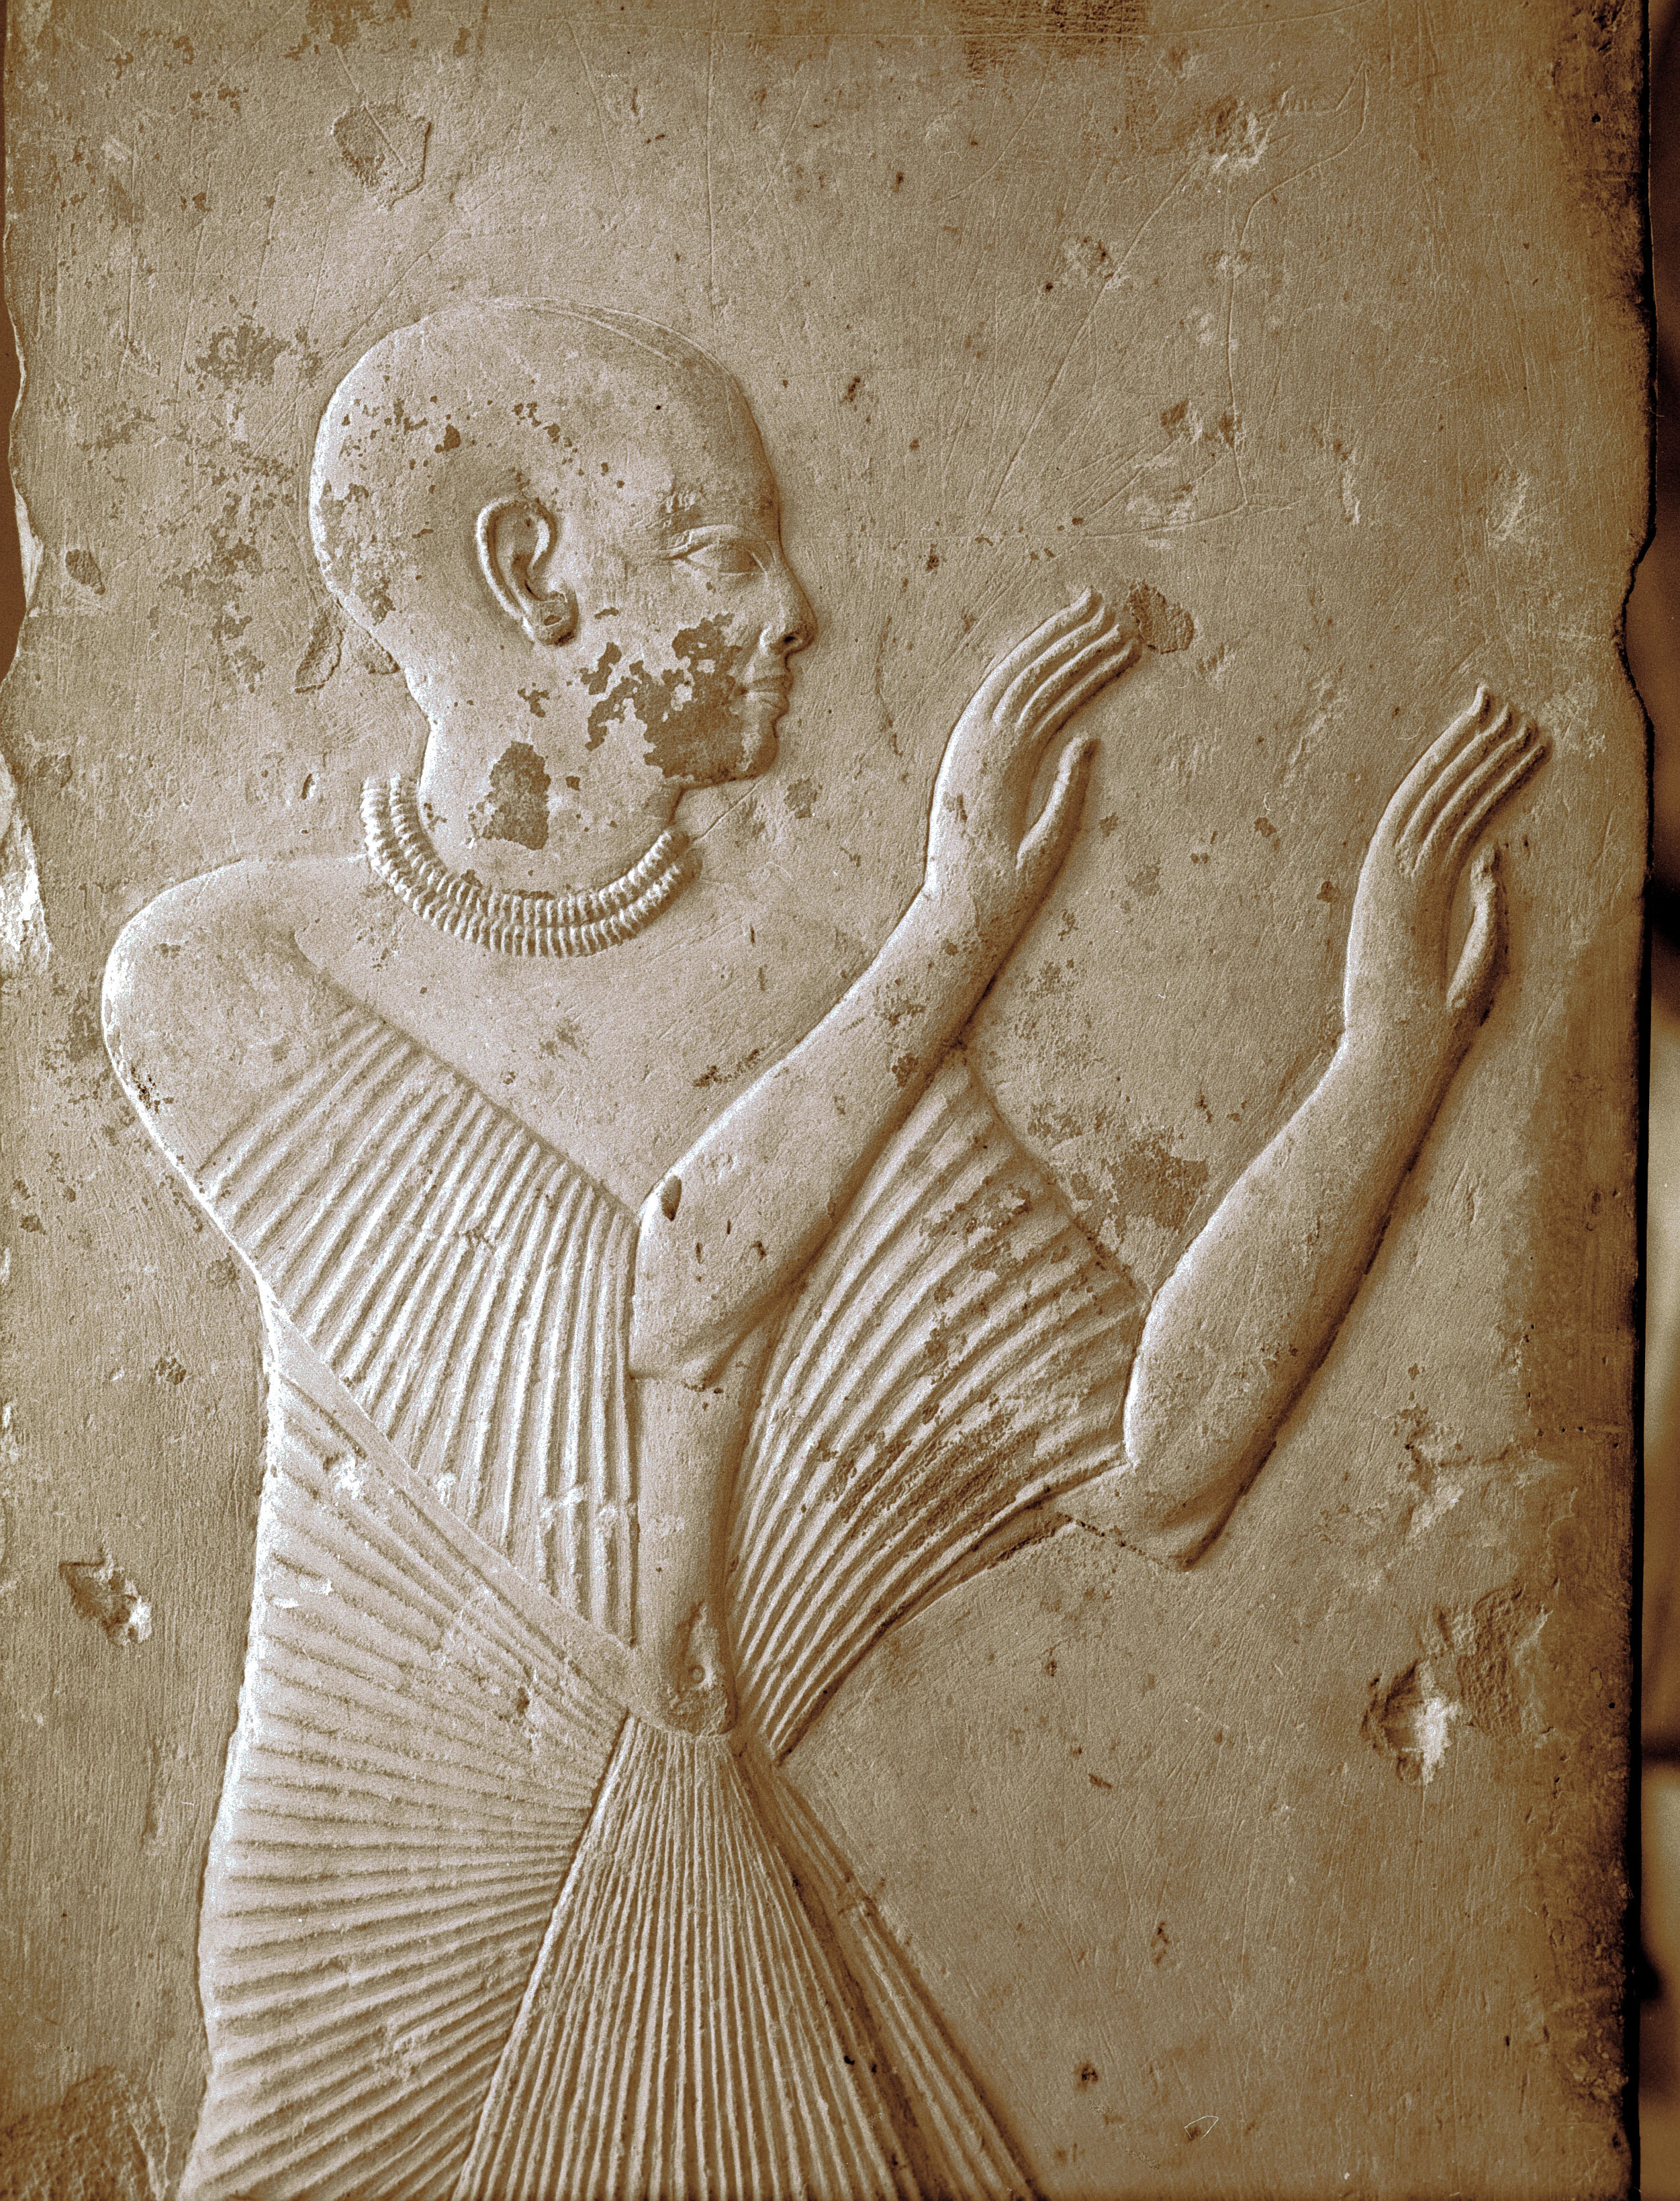 Detail of one of the four pillars from the tomb of Ptahmose depicting an adorant, found in Saqqara, Egypt.